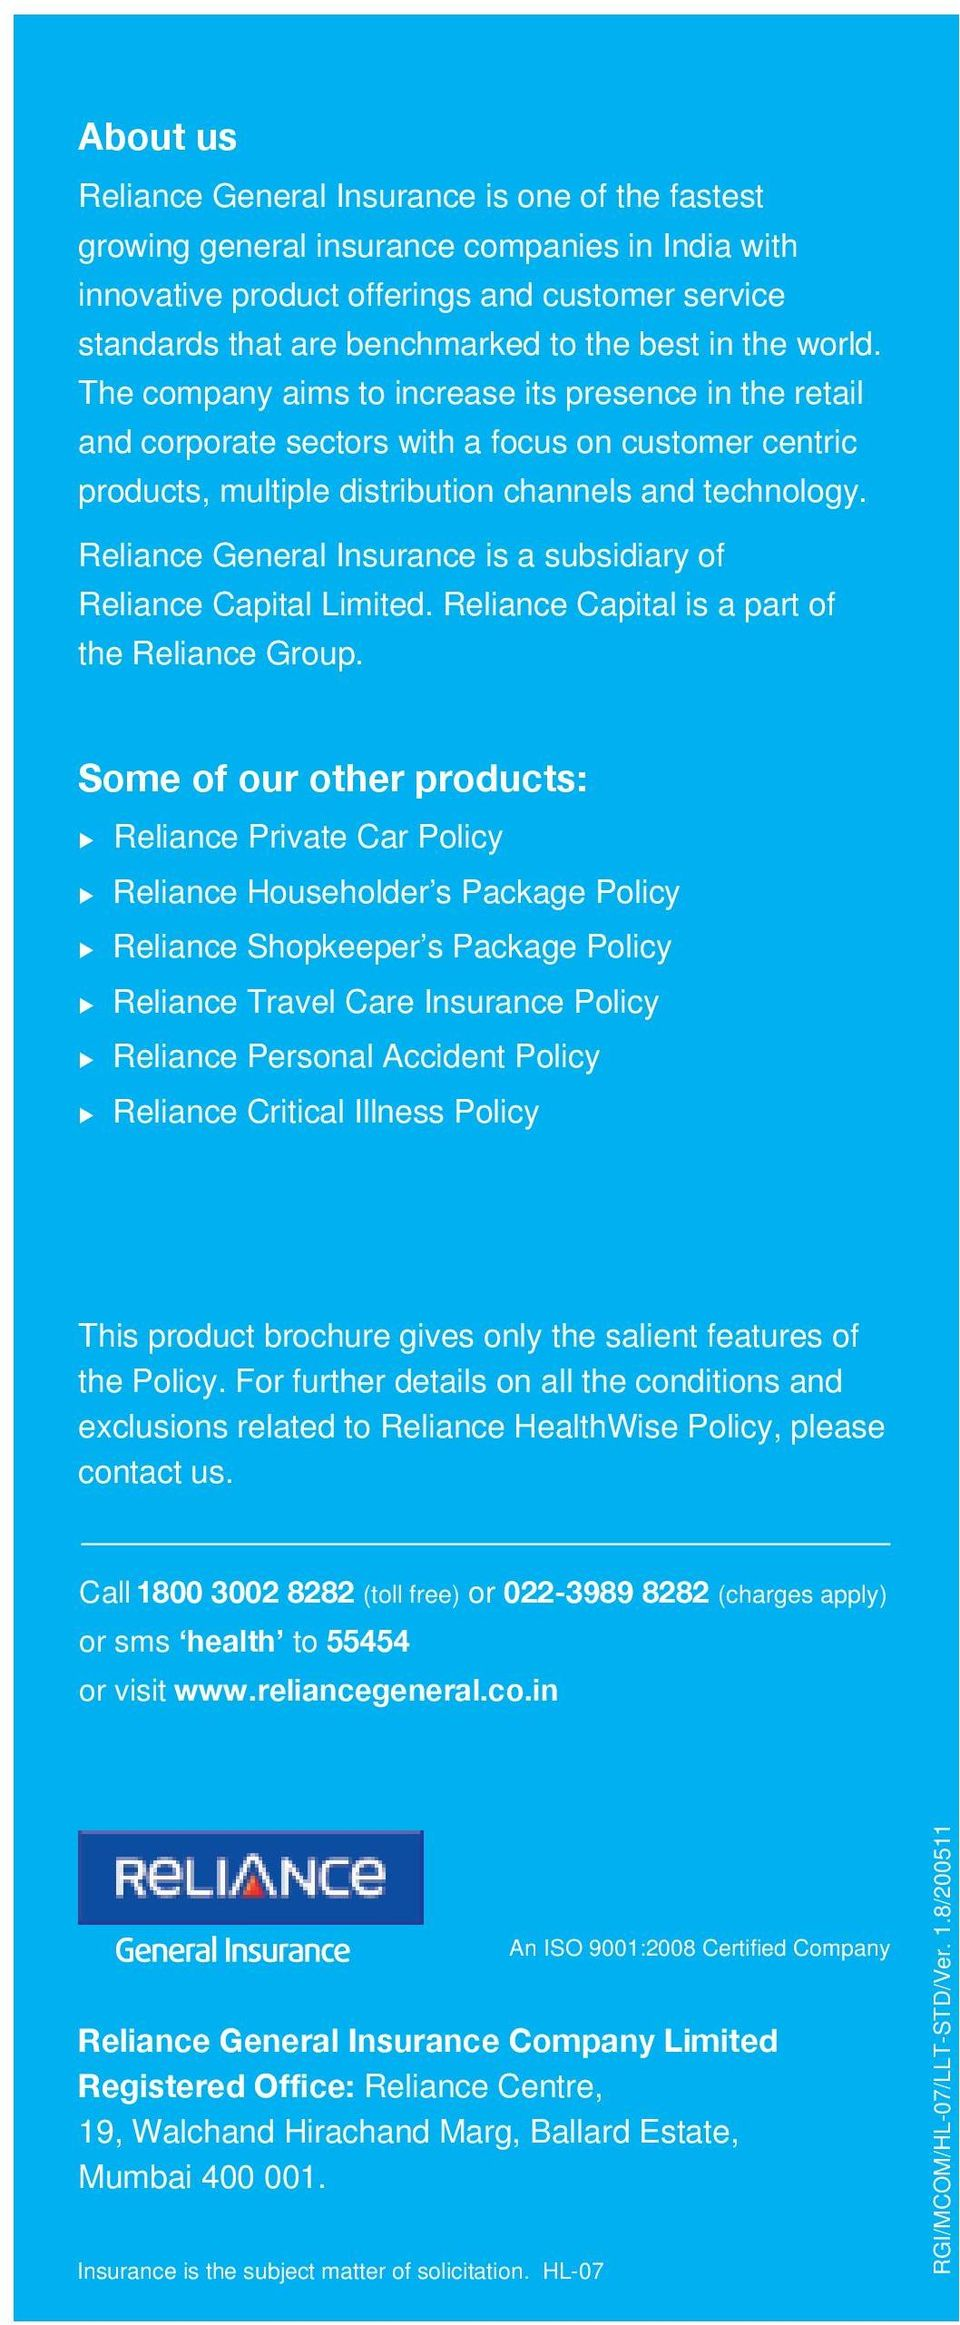 Reliance General Insurance is a subsidiary of Reliance Capital Limited. Reliance Capital is a part of the Reliance Group.